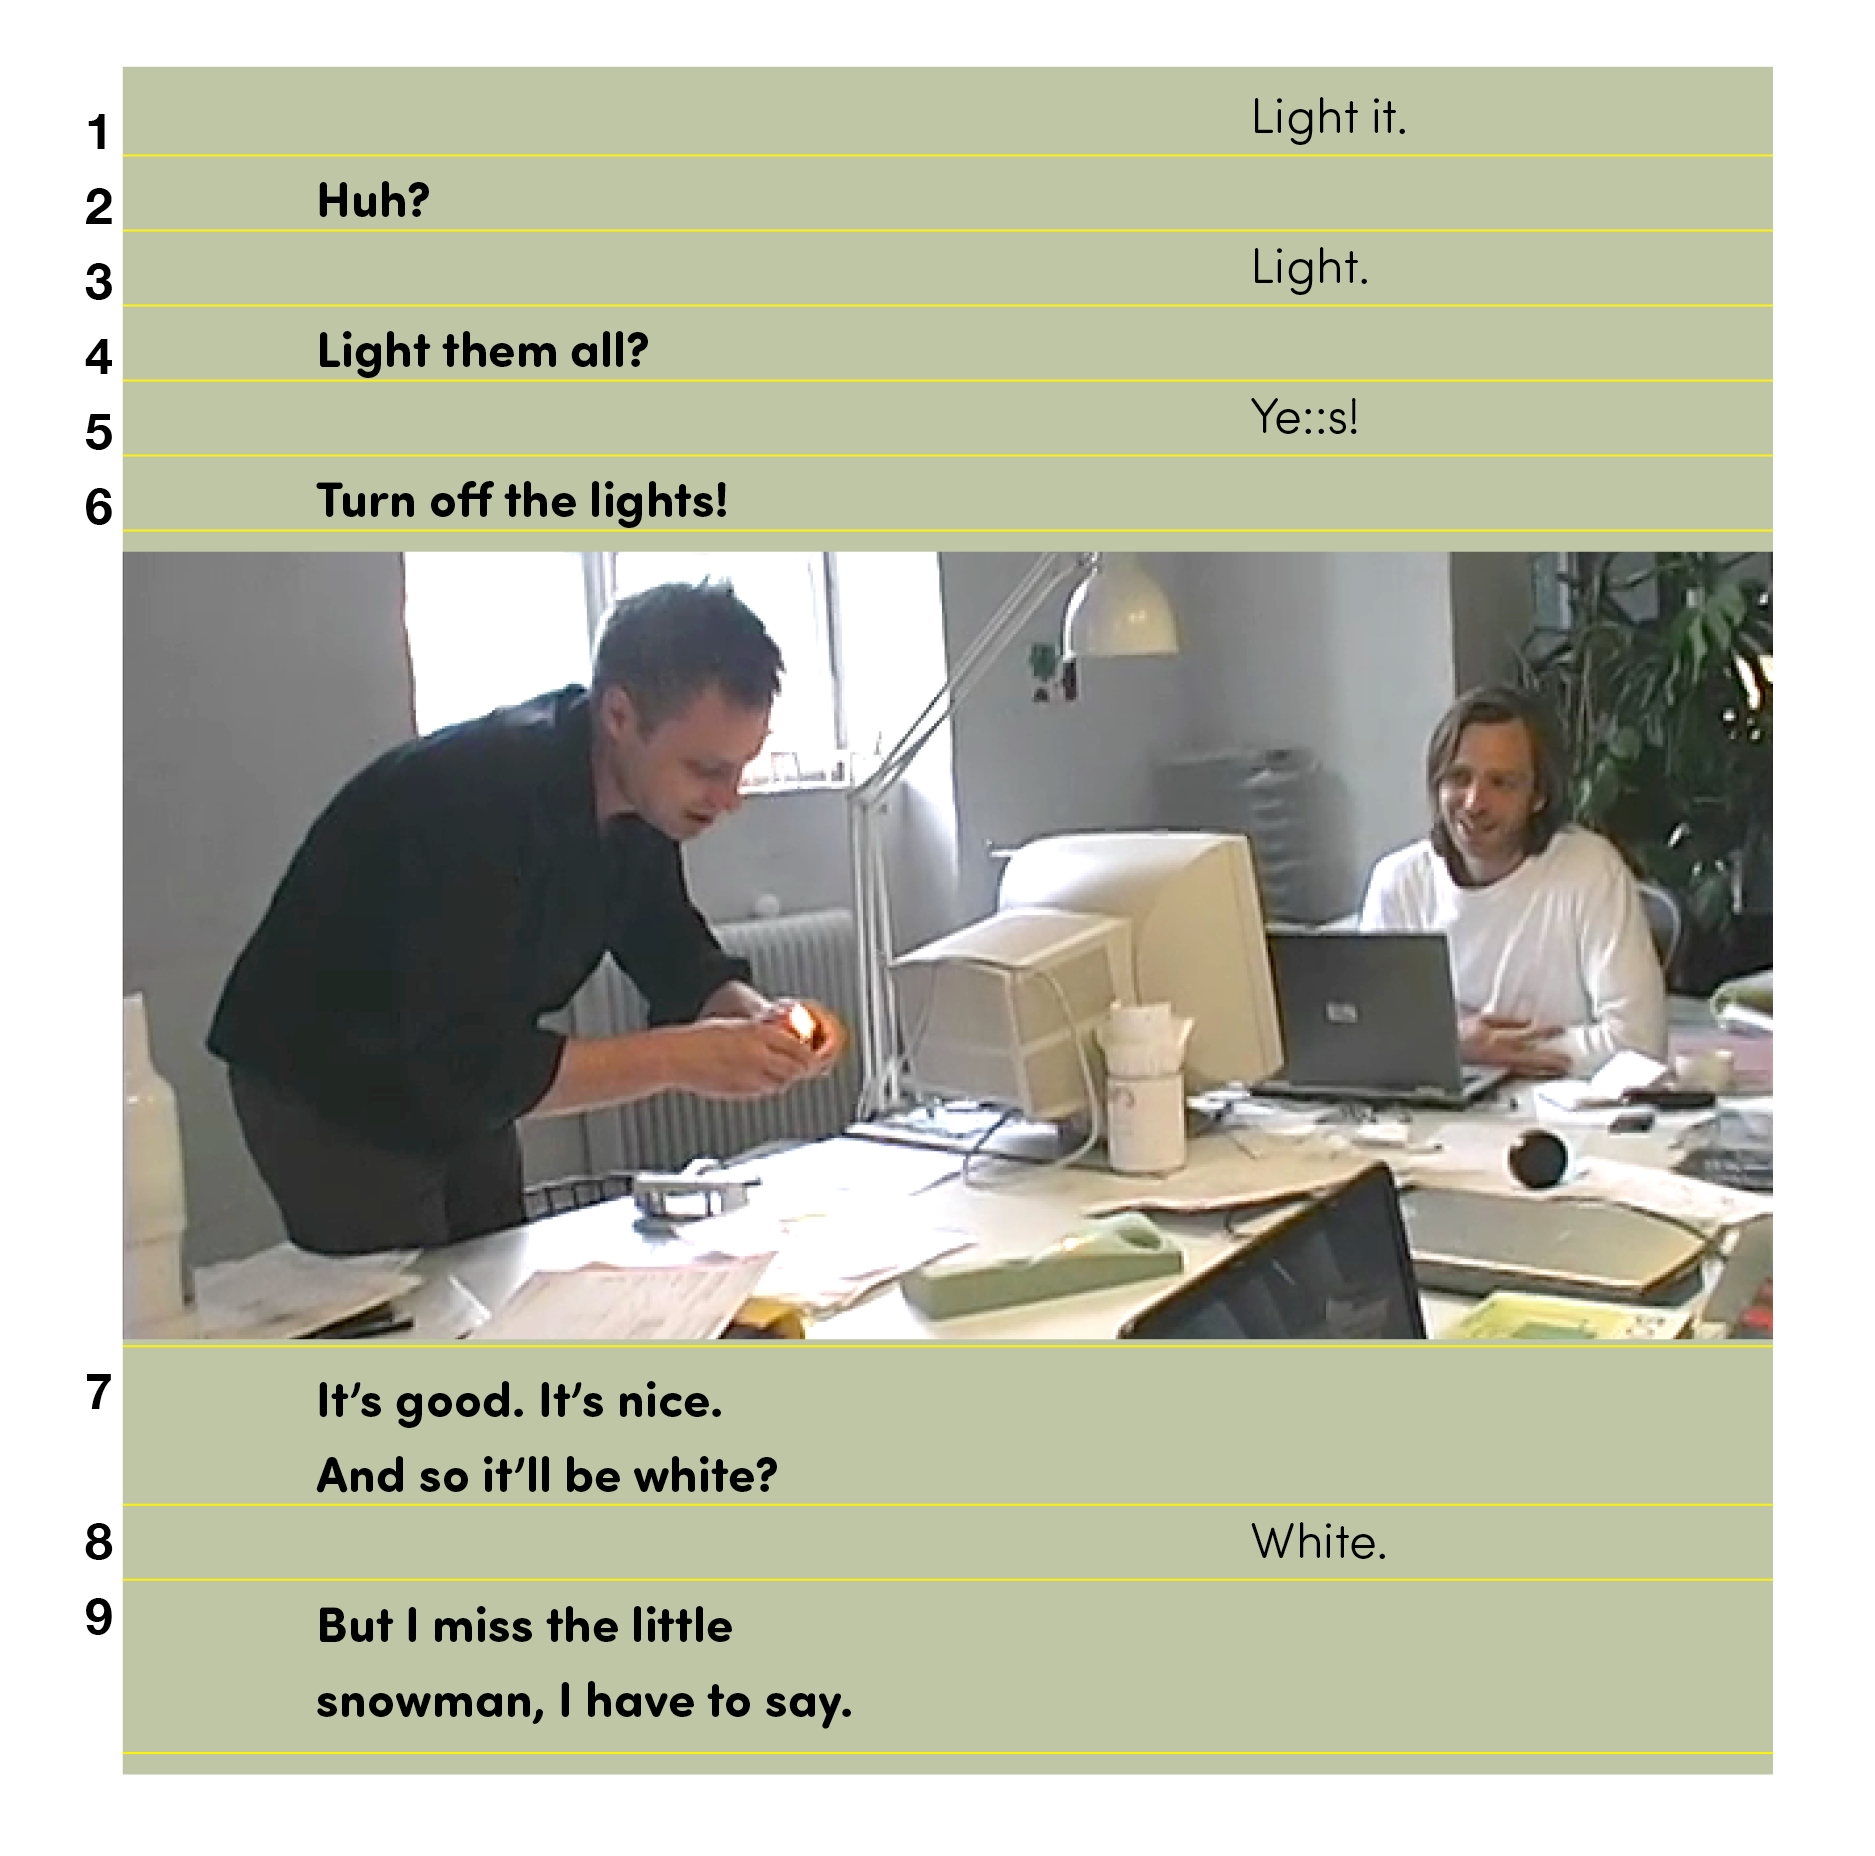 Example 20. Using background color, typeface, and columns to echo visual image in transcript